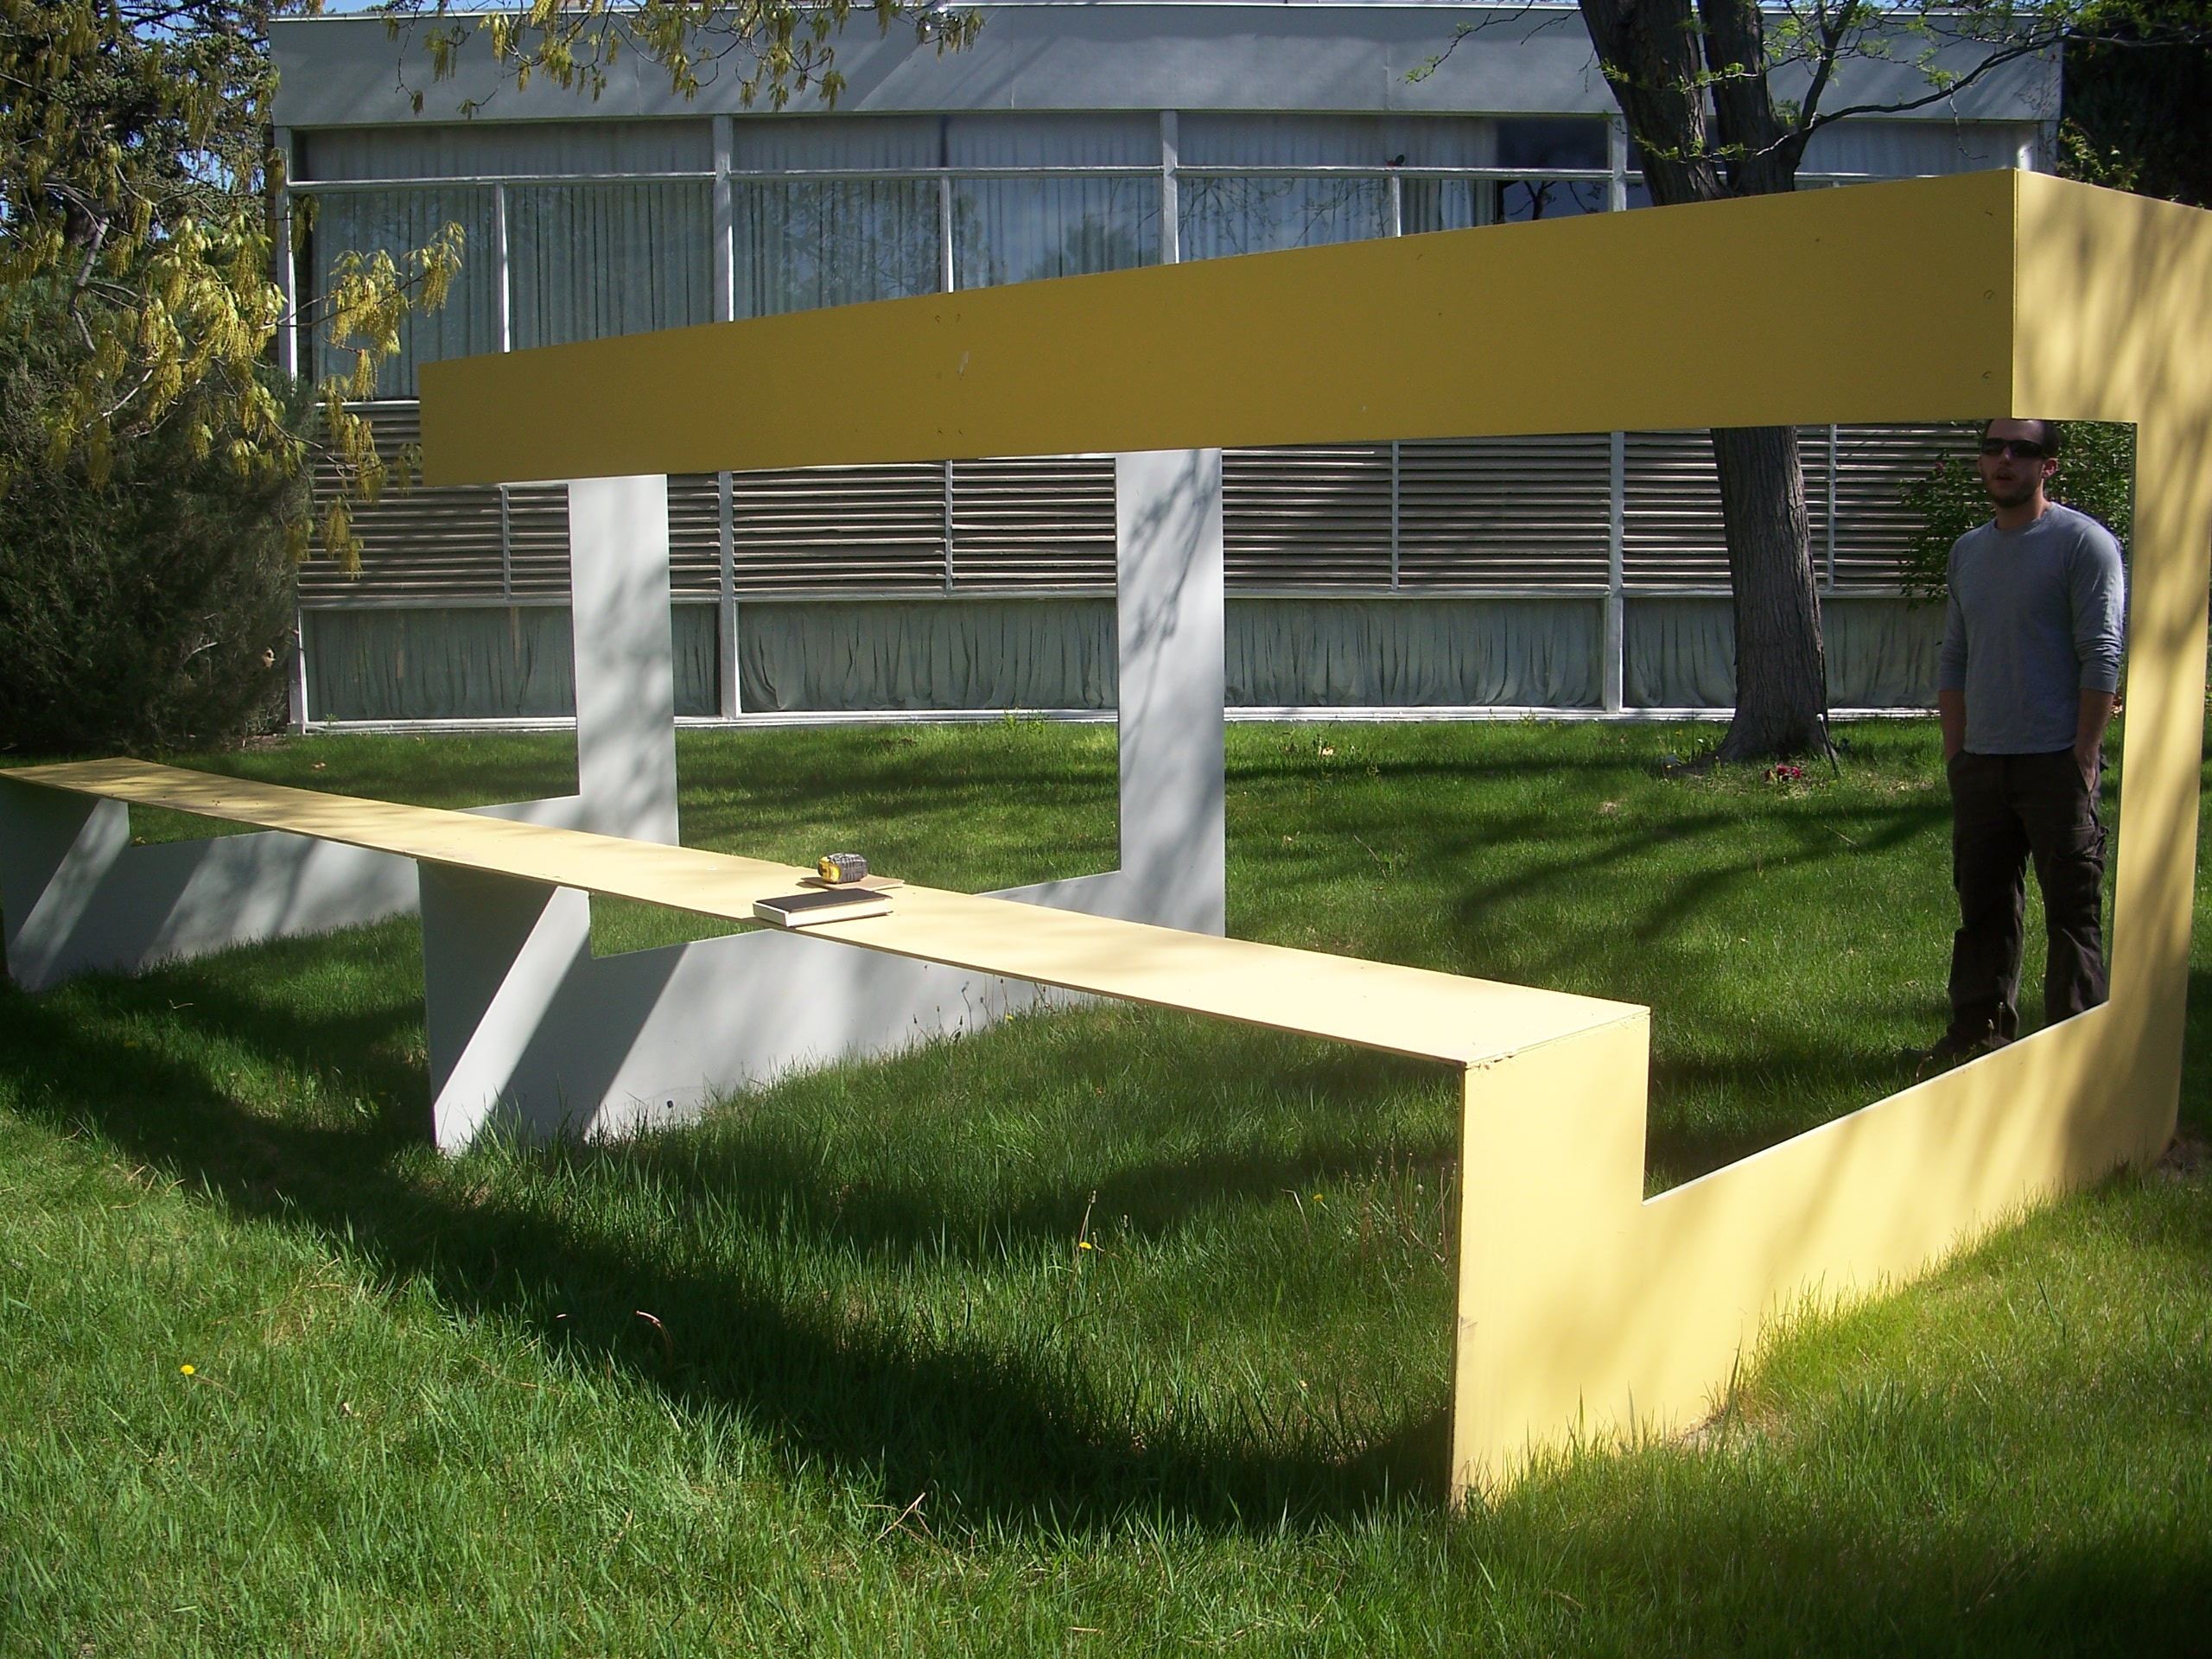 Go to the Untitled (Yellow Bench) page